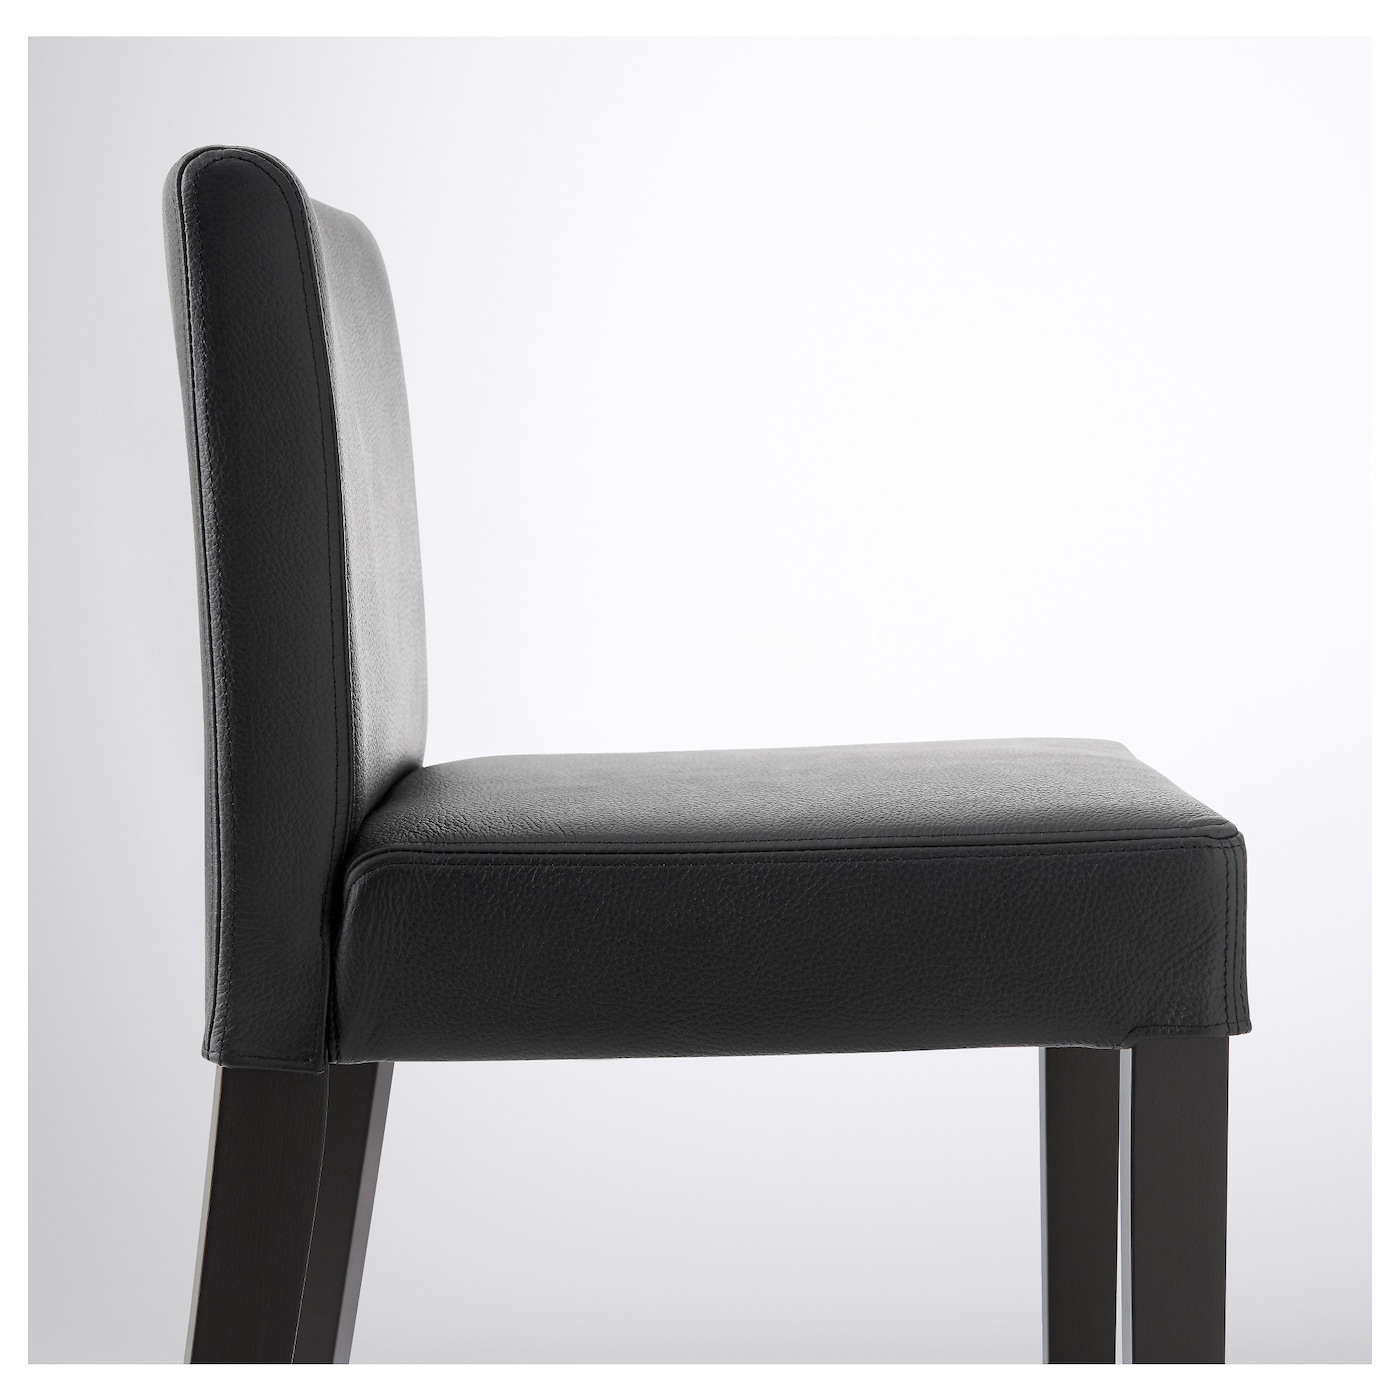 IKEA HENRIKSDAL bar stool with backrest The padded seat means you sit comfortably.